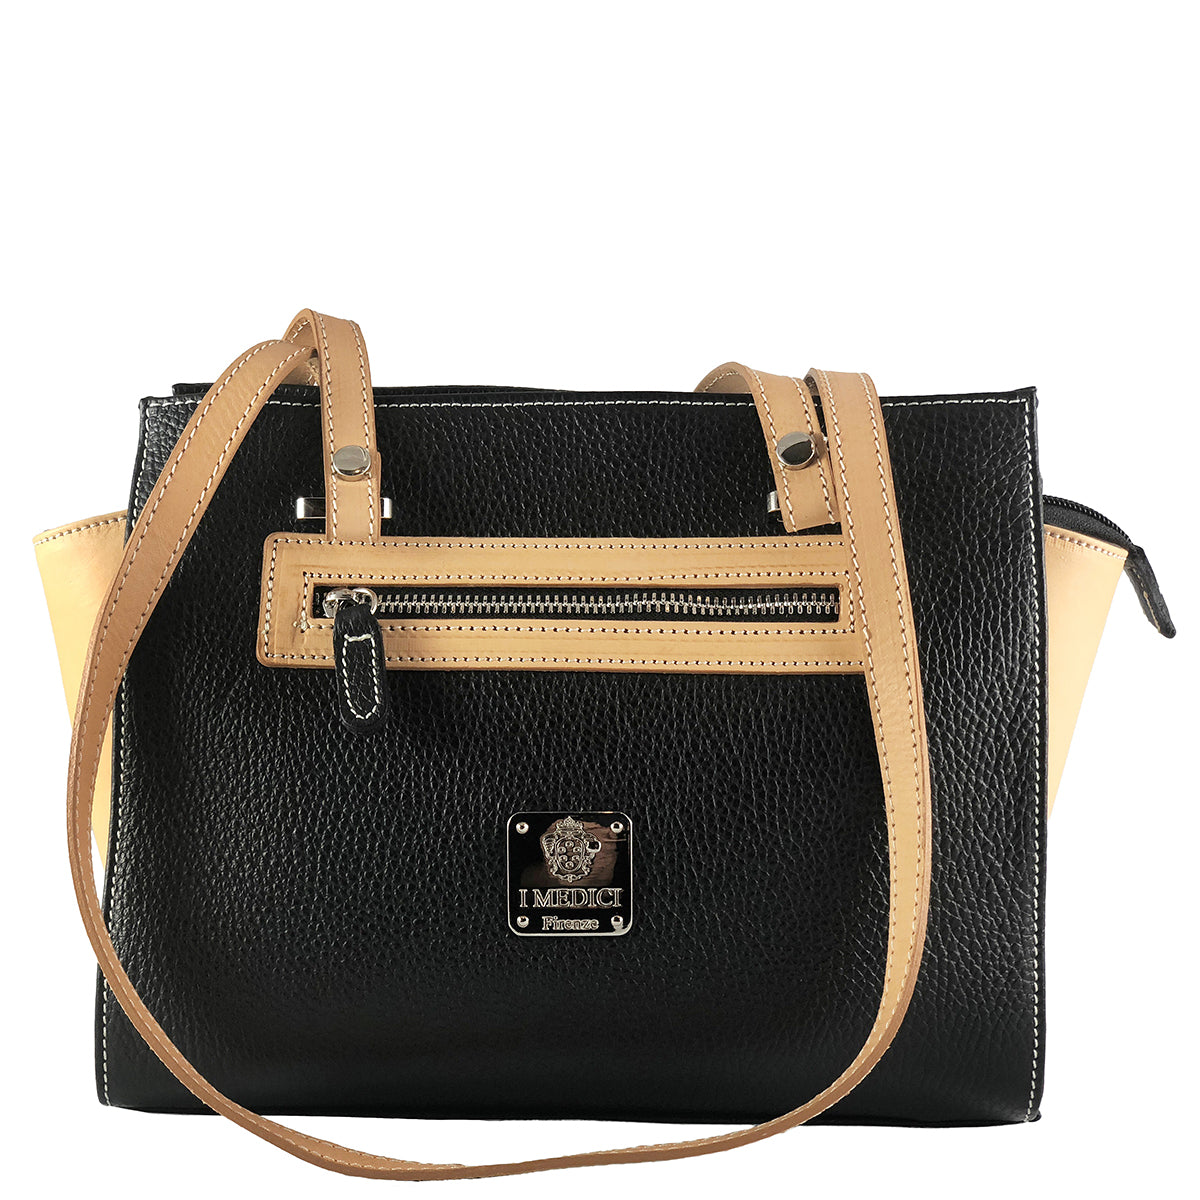 Italian black Handbags by I Medici